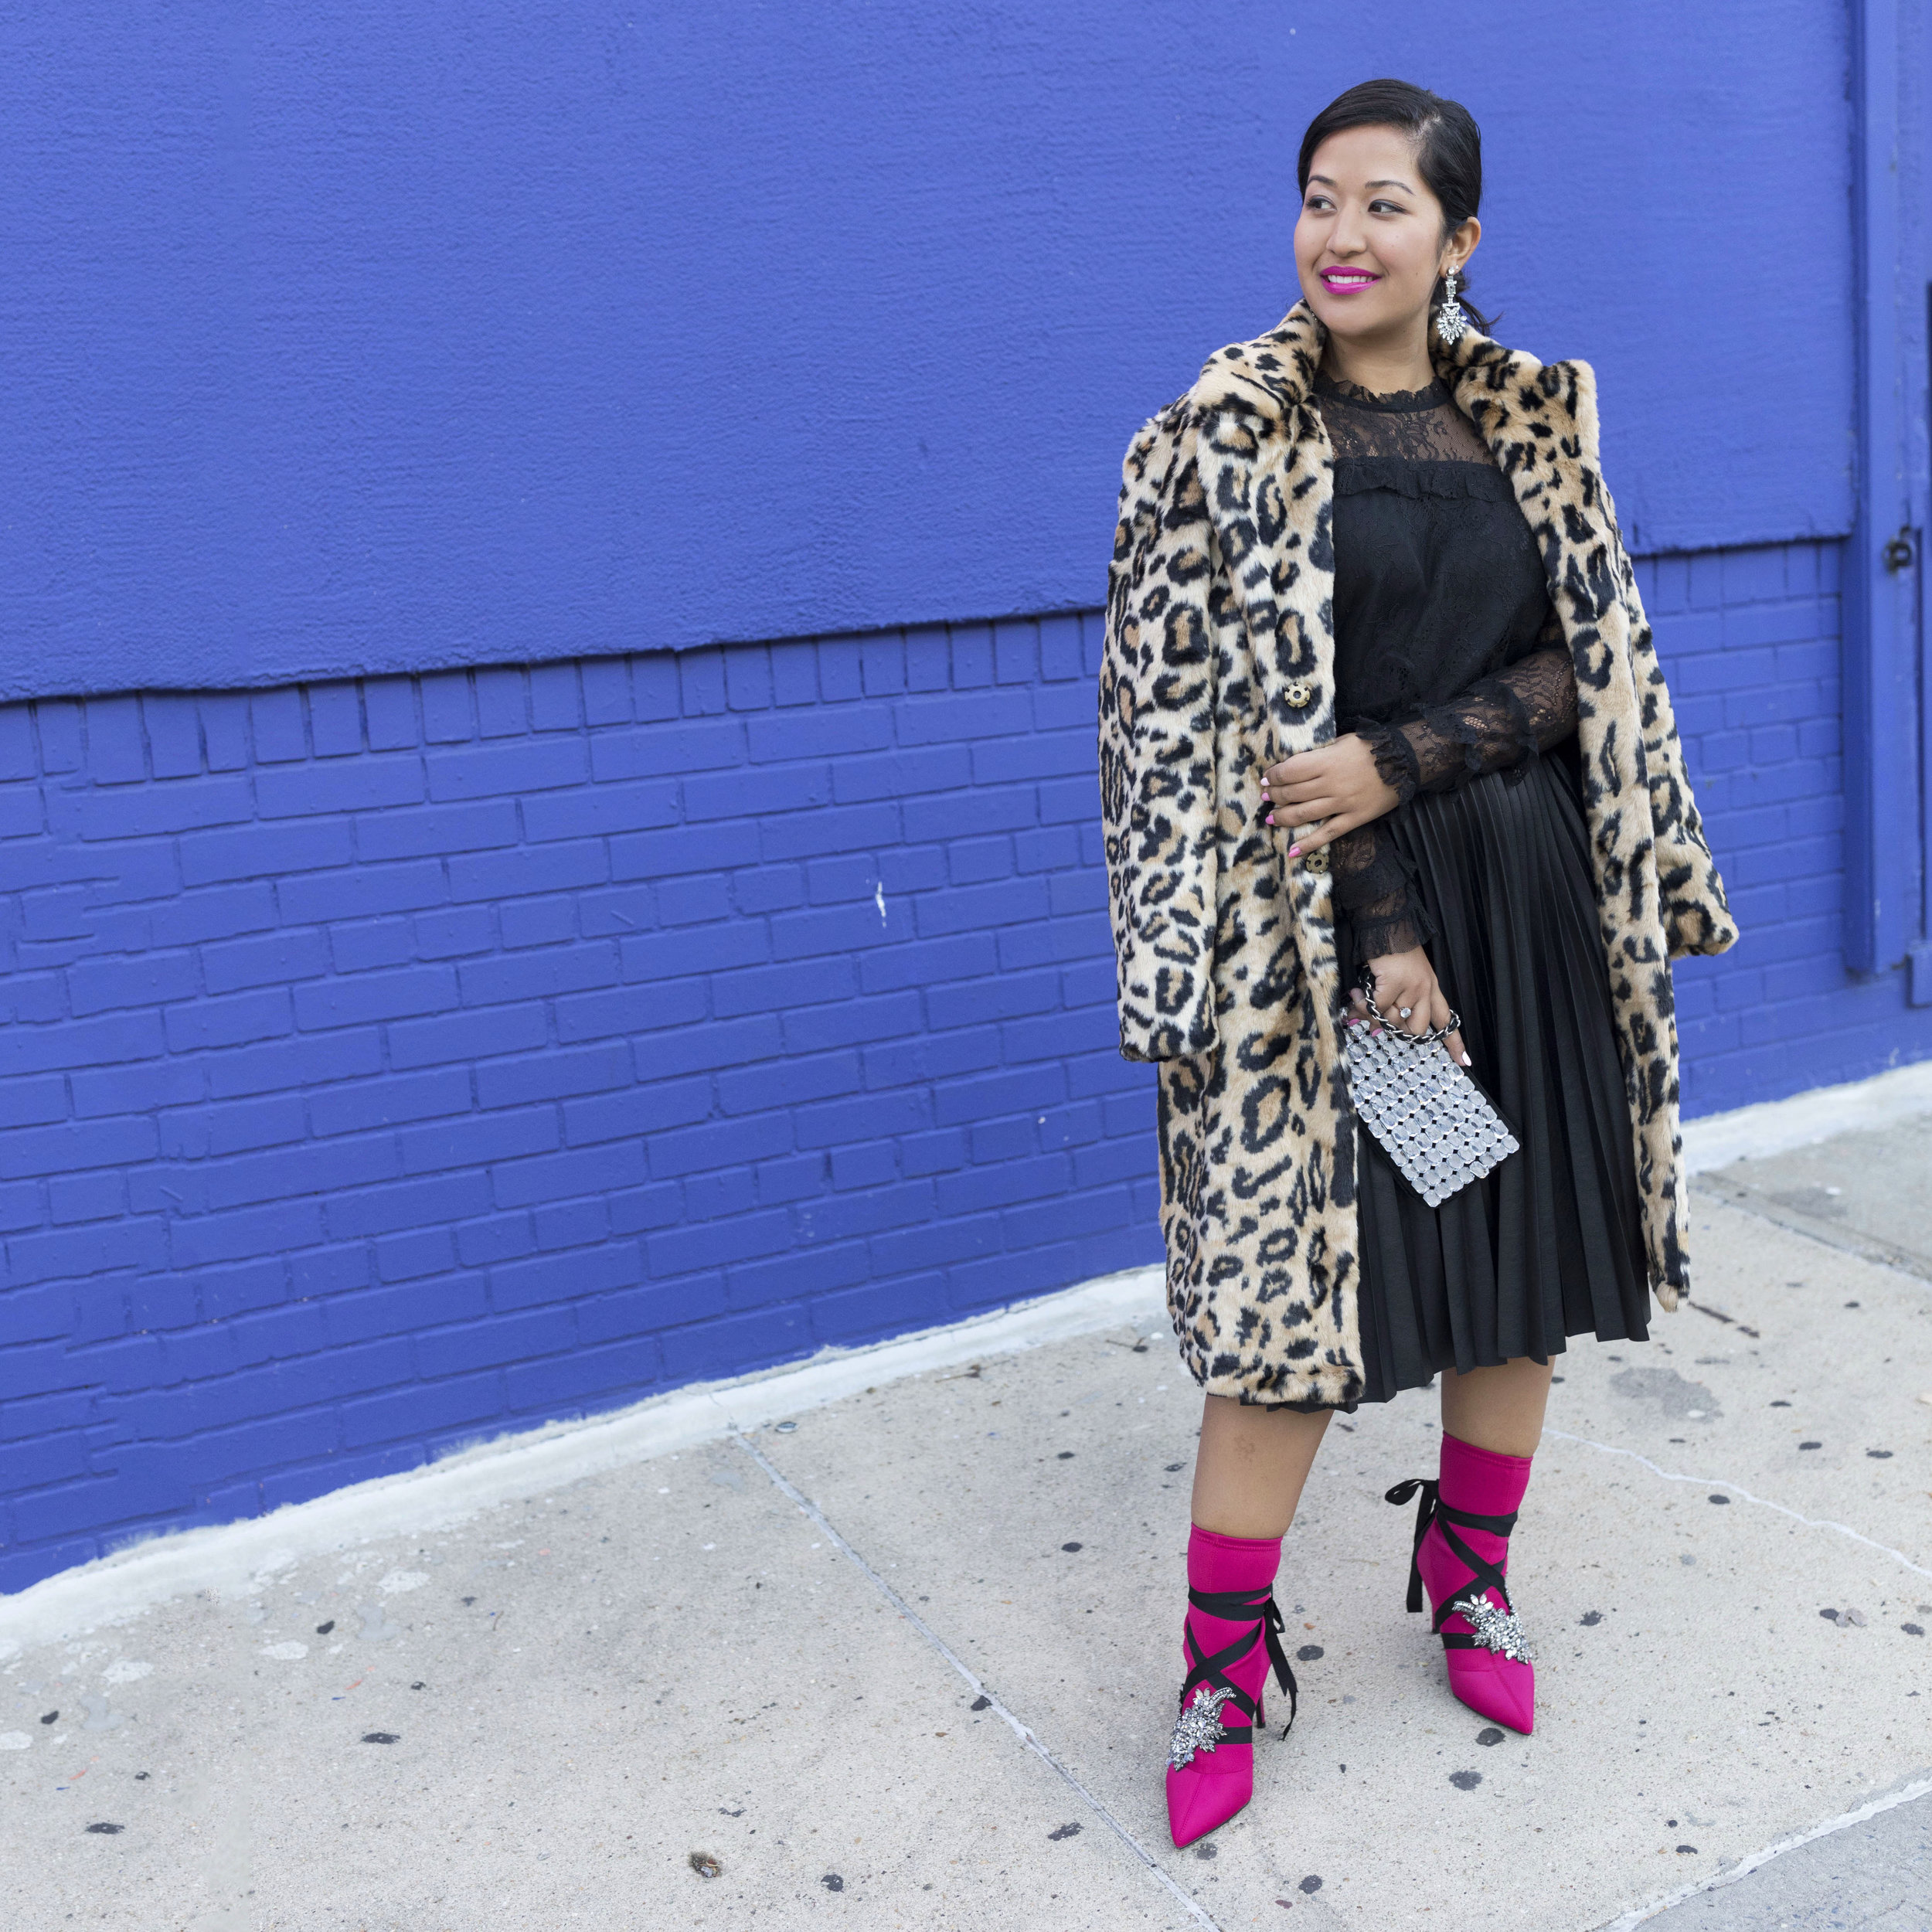 Krity S x Pink Sock Boots x Party Look 4.jpg